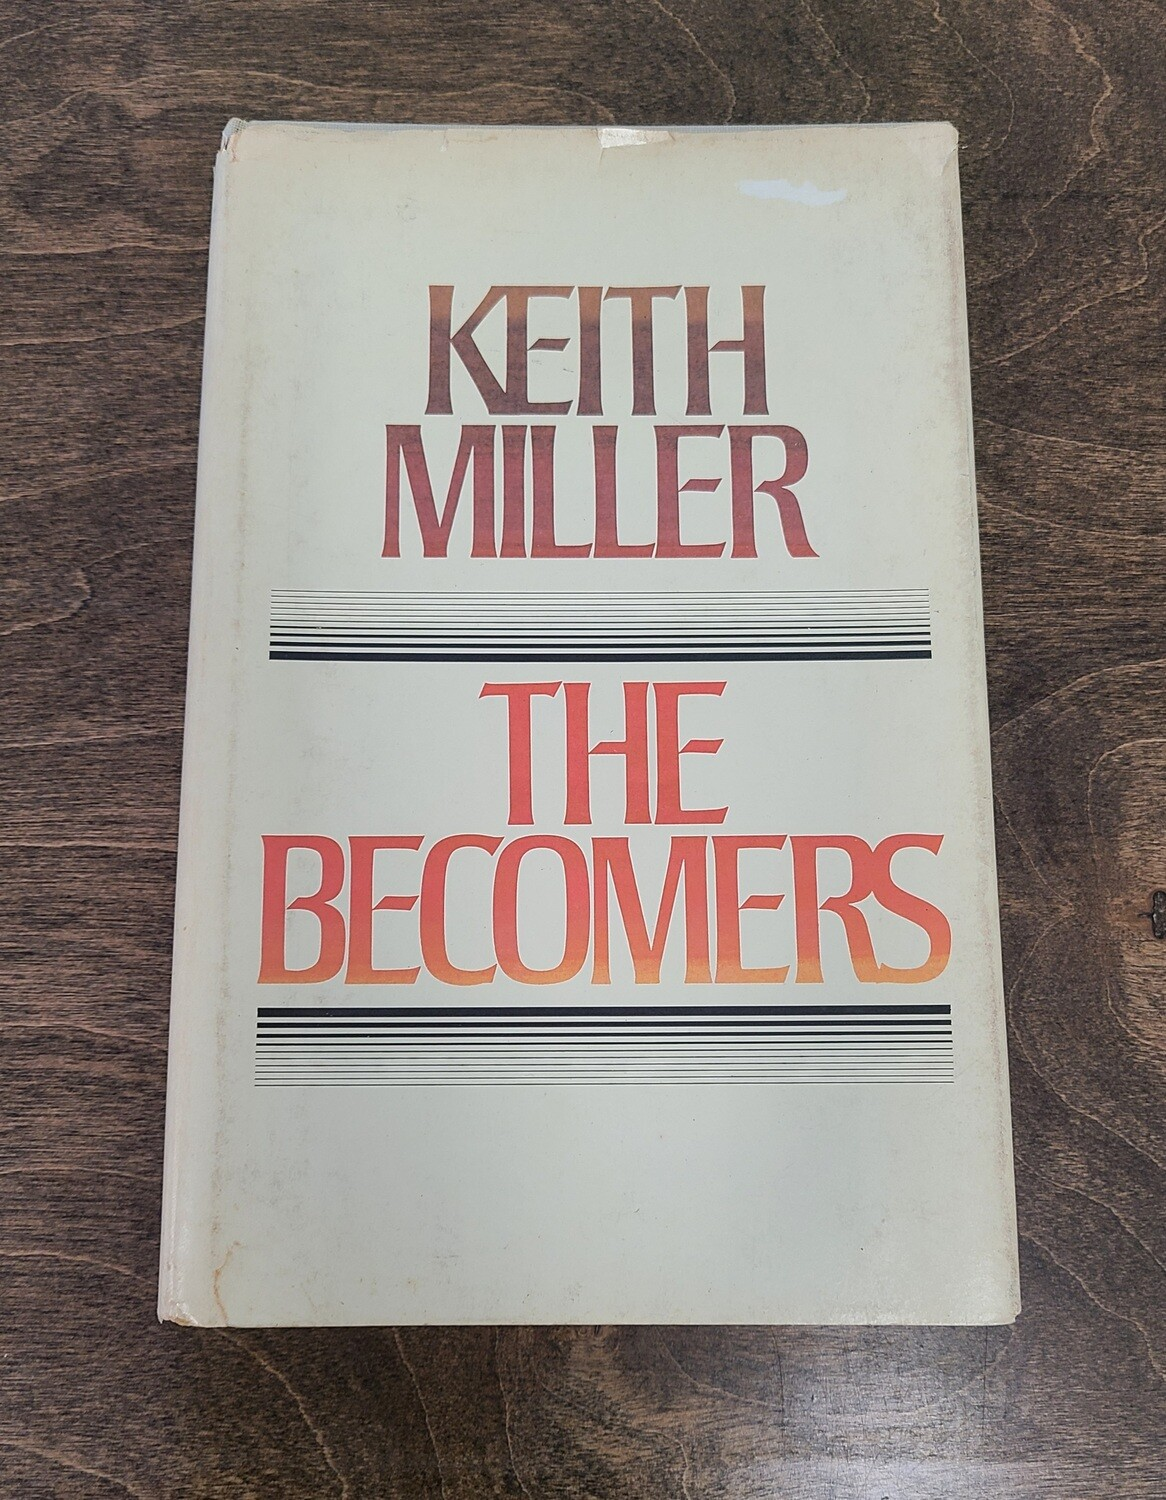 The Becomers by Keith Miller